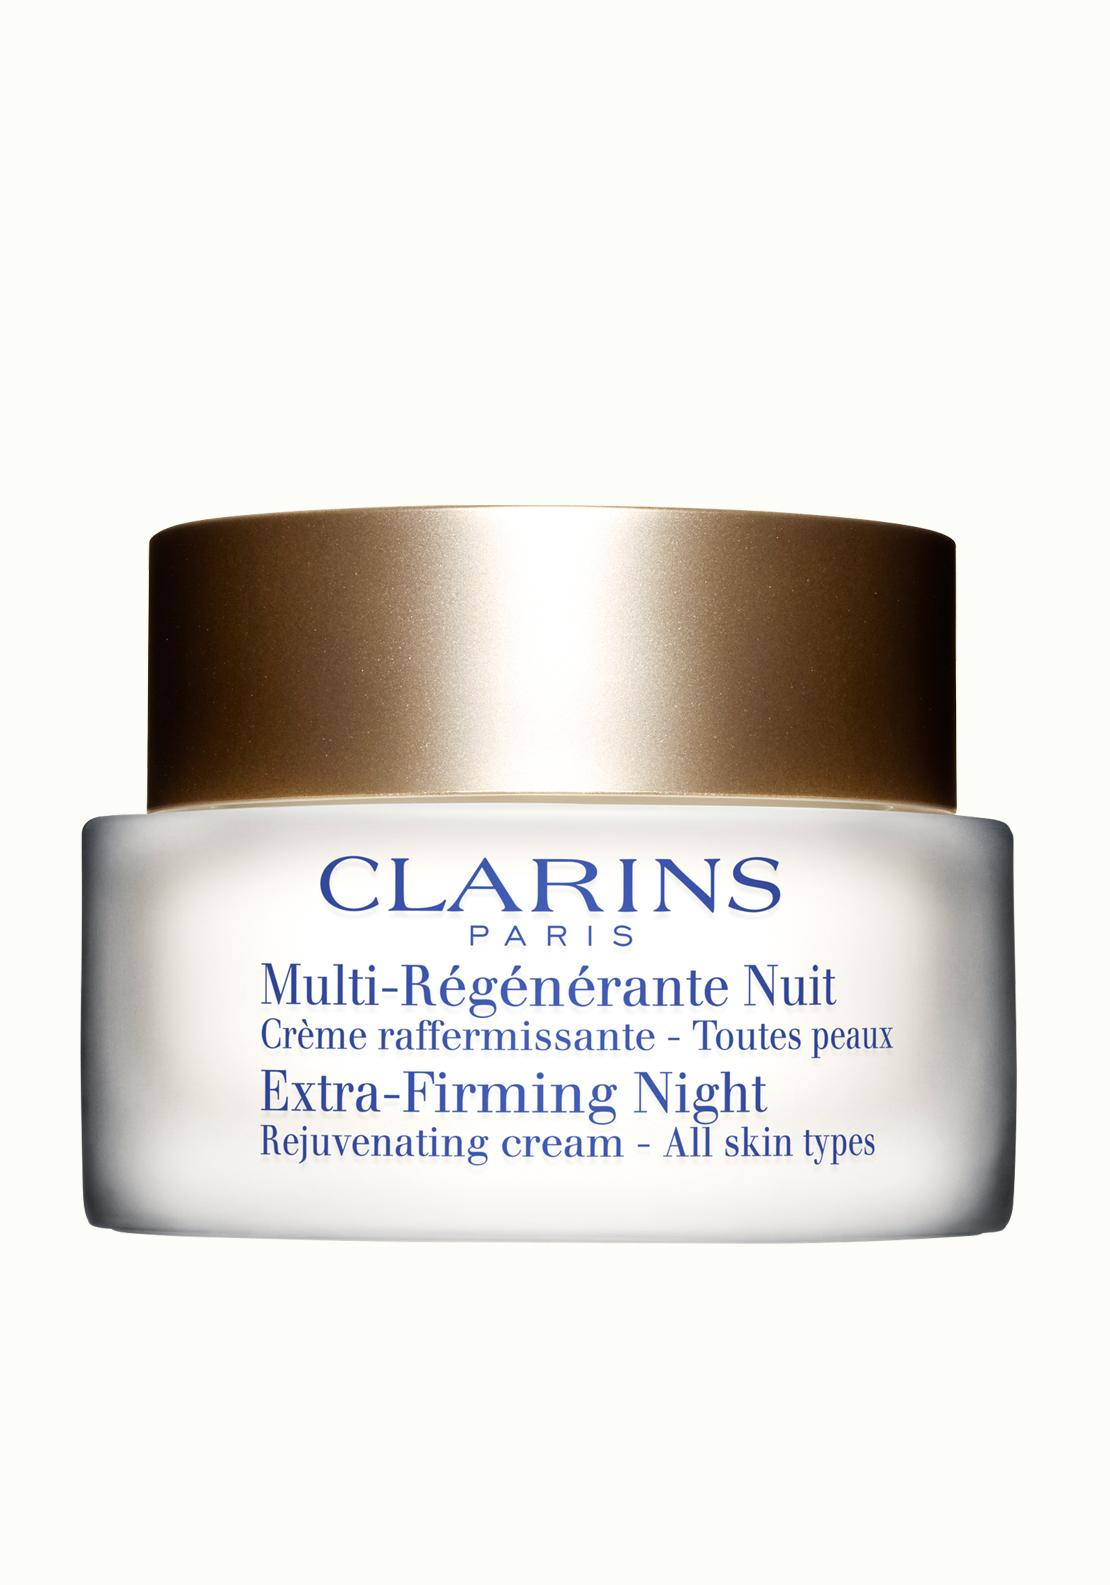 Clarins Extra-Firming Night Rejuvenating Cream 50ml